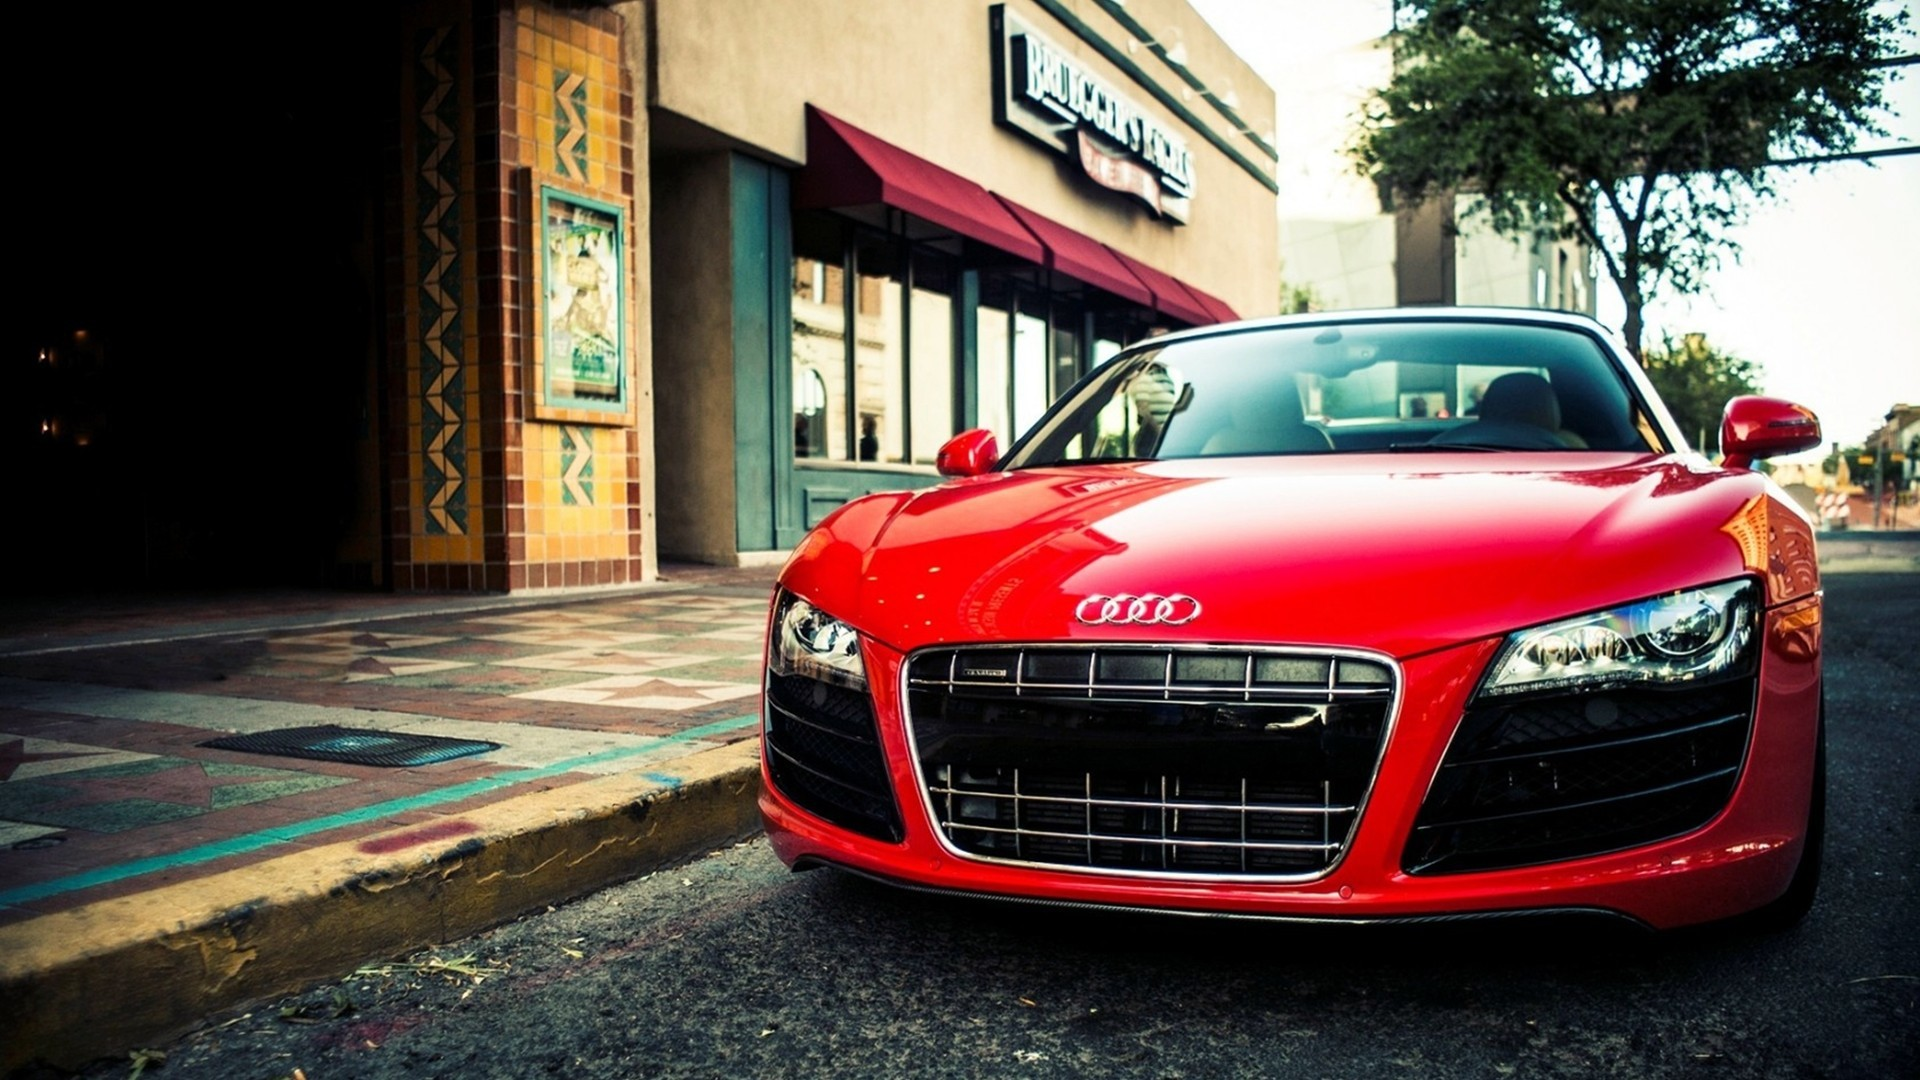 1920x1080 Audi Wallpapers Free Download